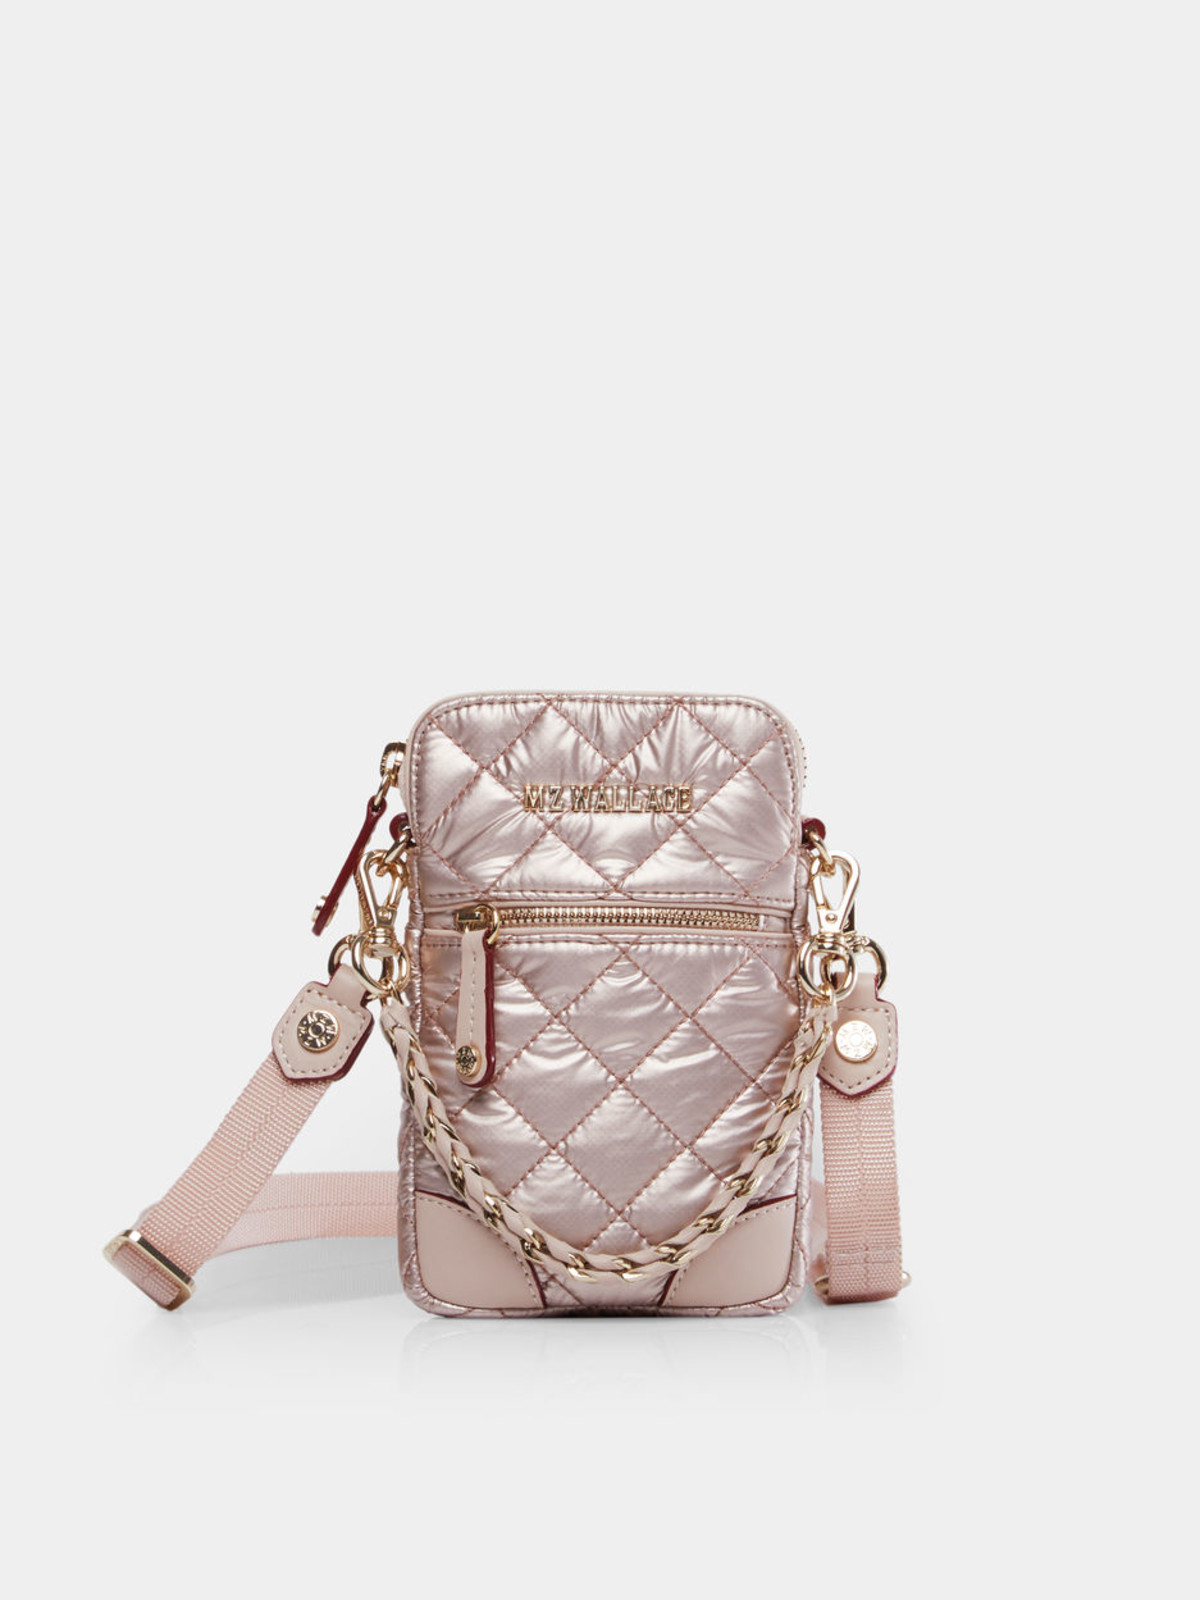 M Penner: MZ Wallace Rose Gold Metallic Micro Crossbody